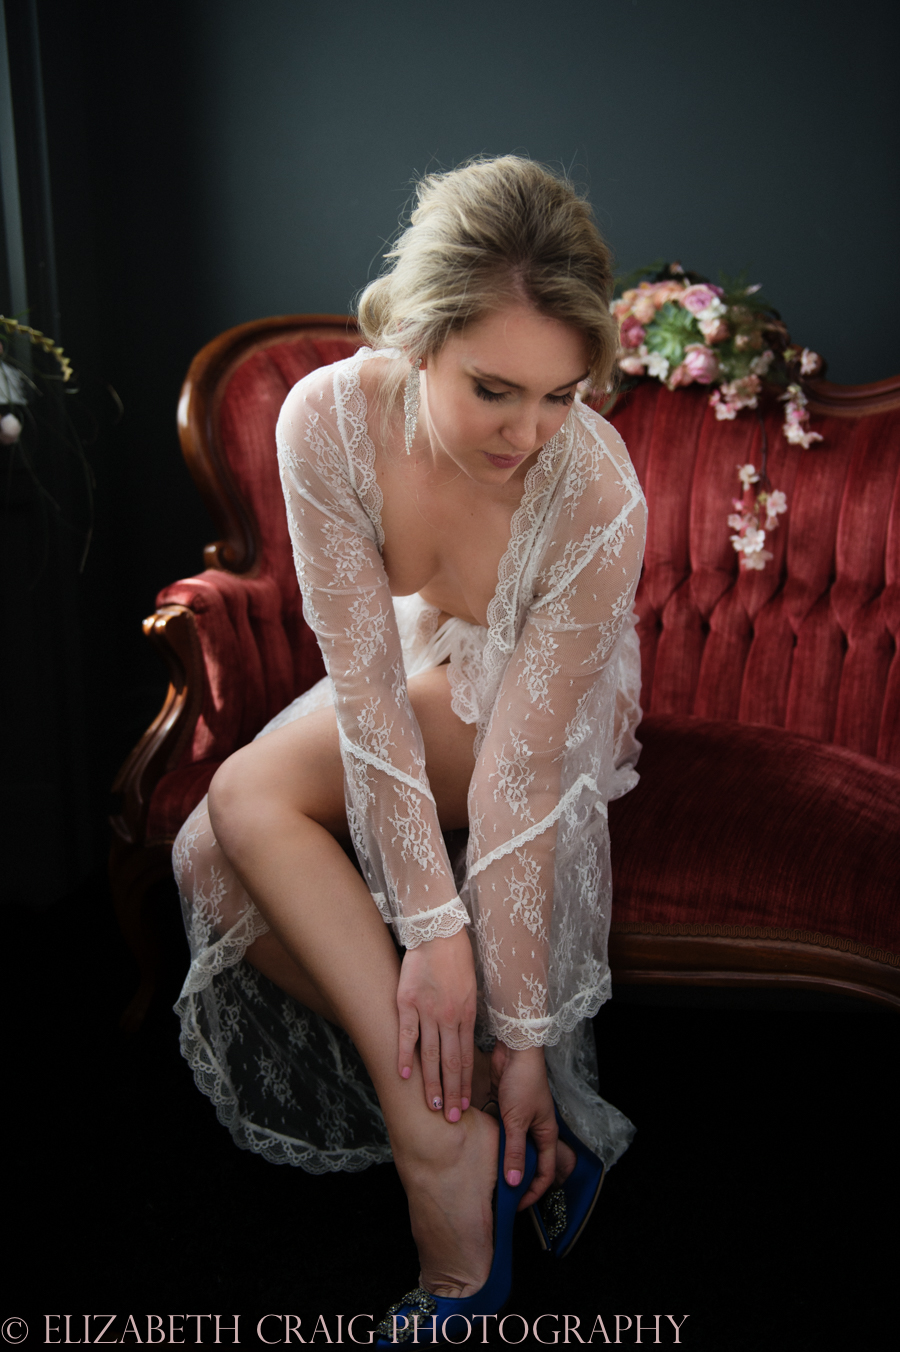 Romantic Bridal Boudoir Photos | Elizabeth Craig Photography-4